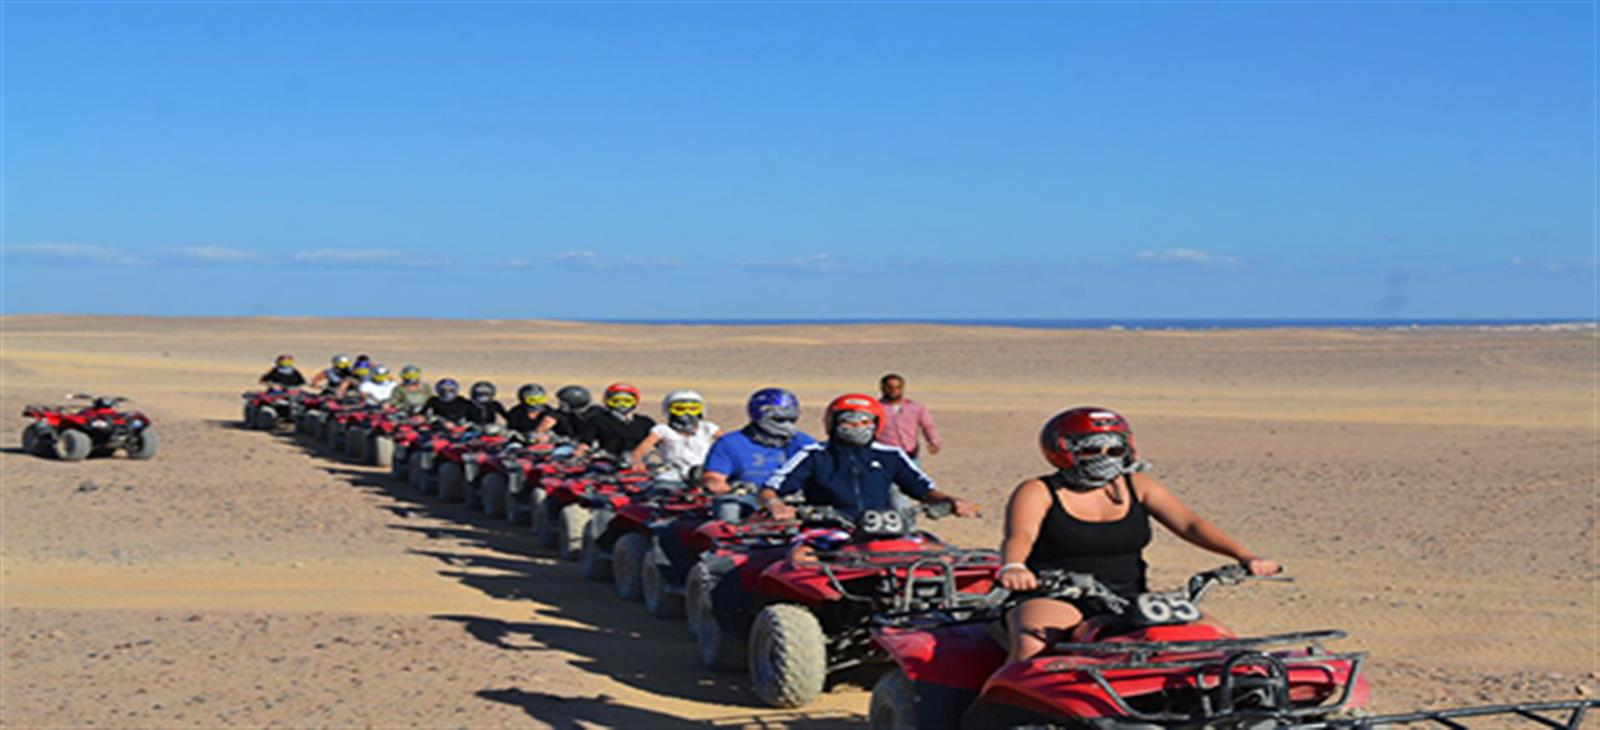 Desert safari from Hurghada